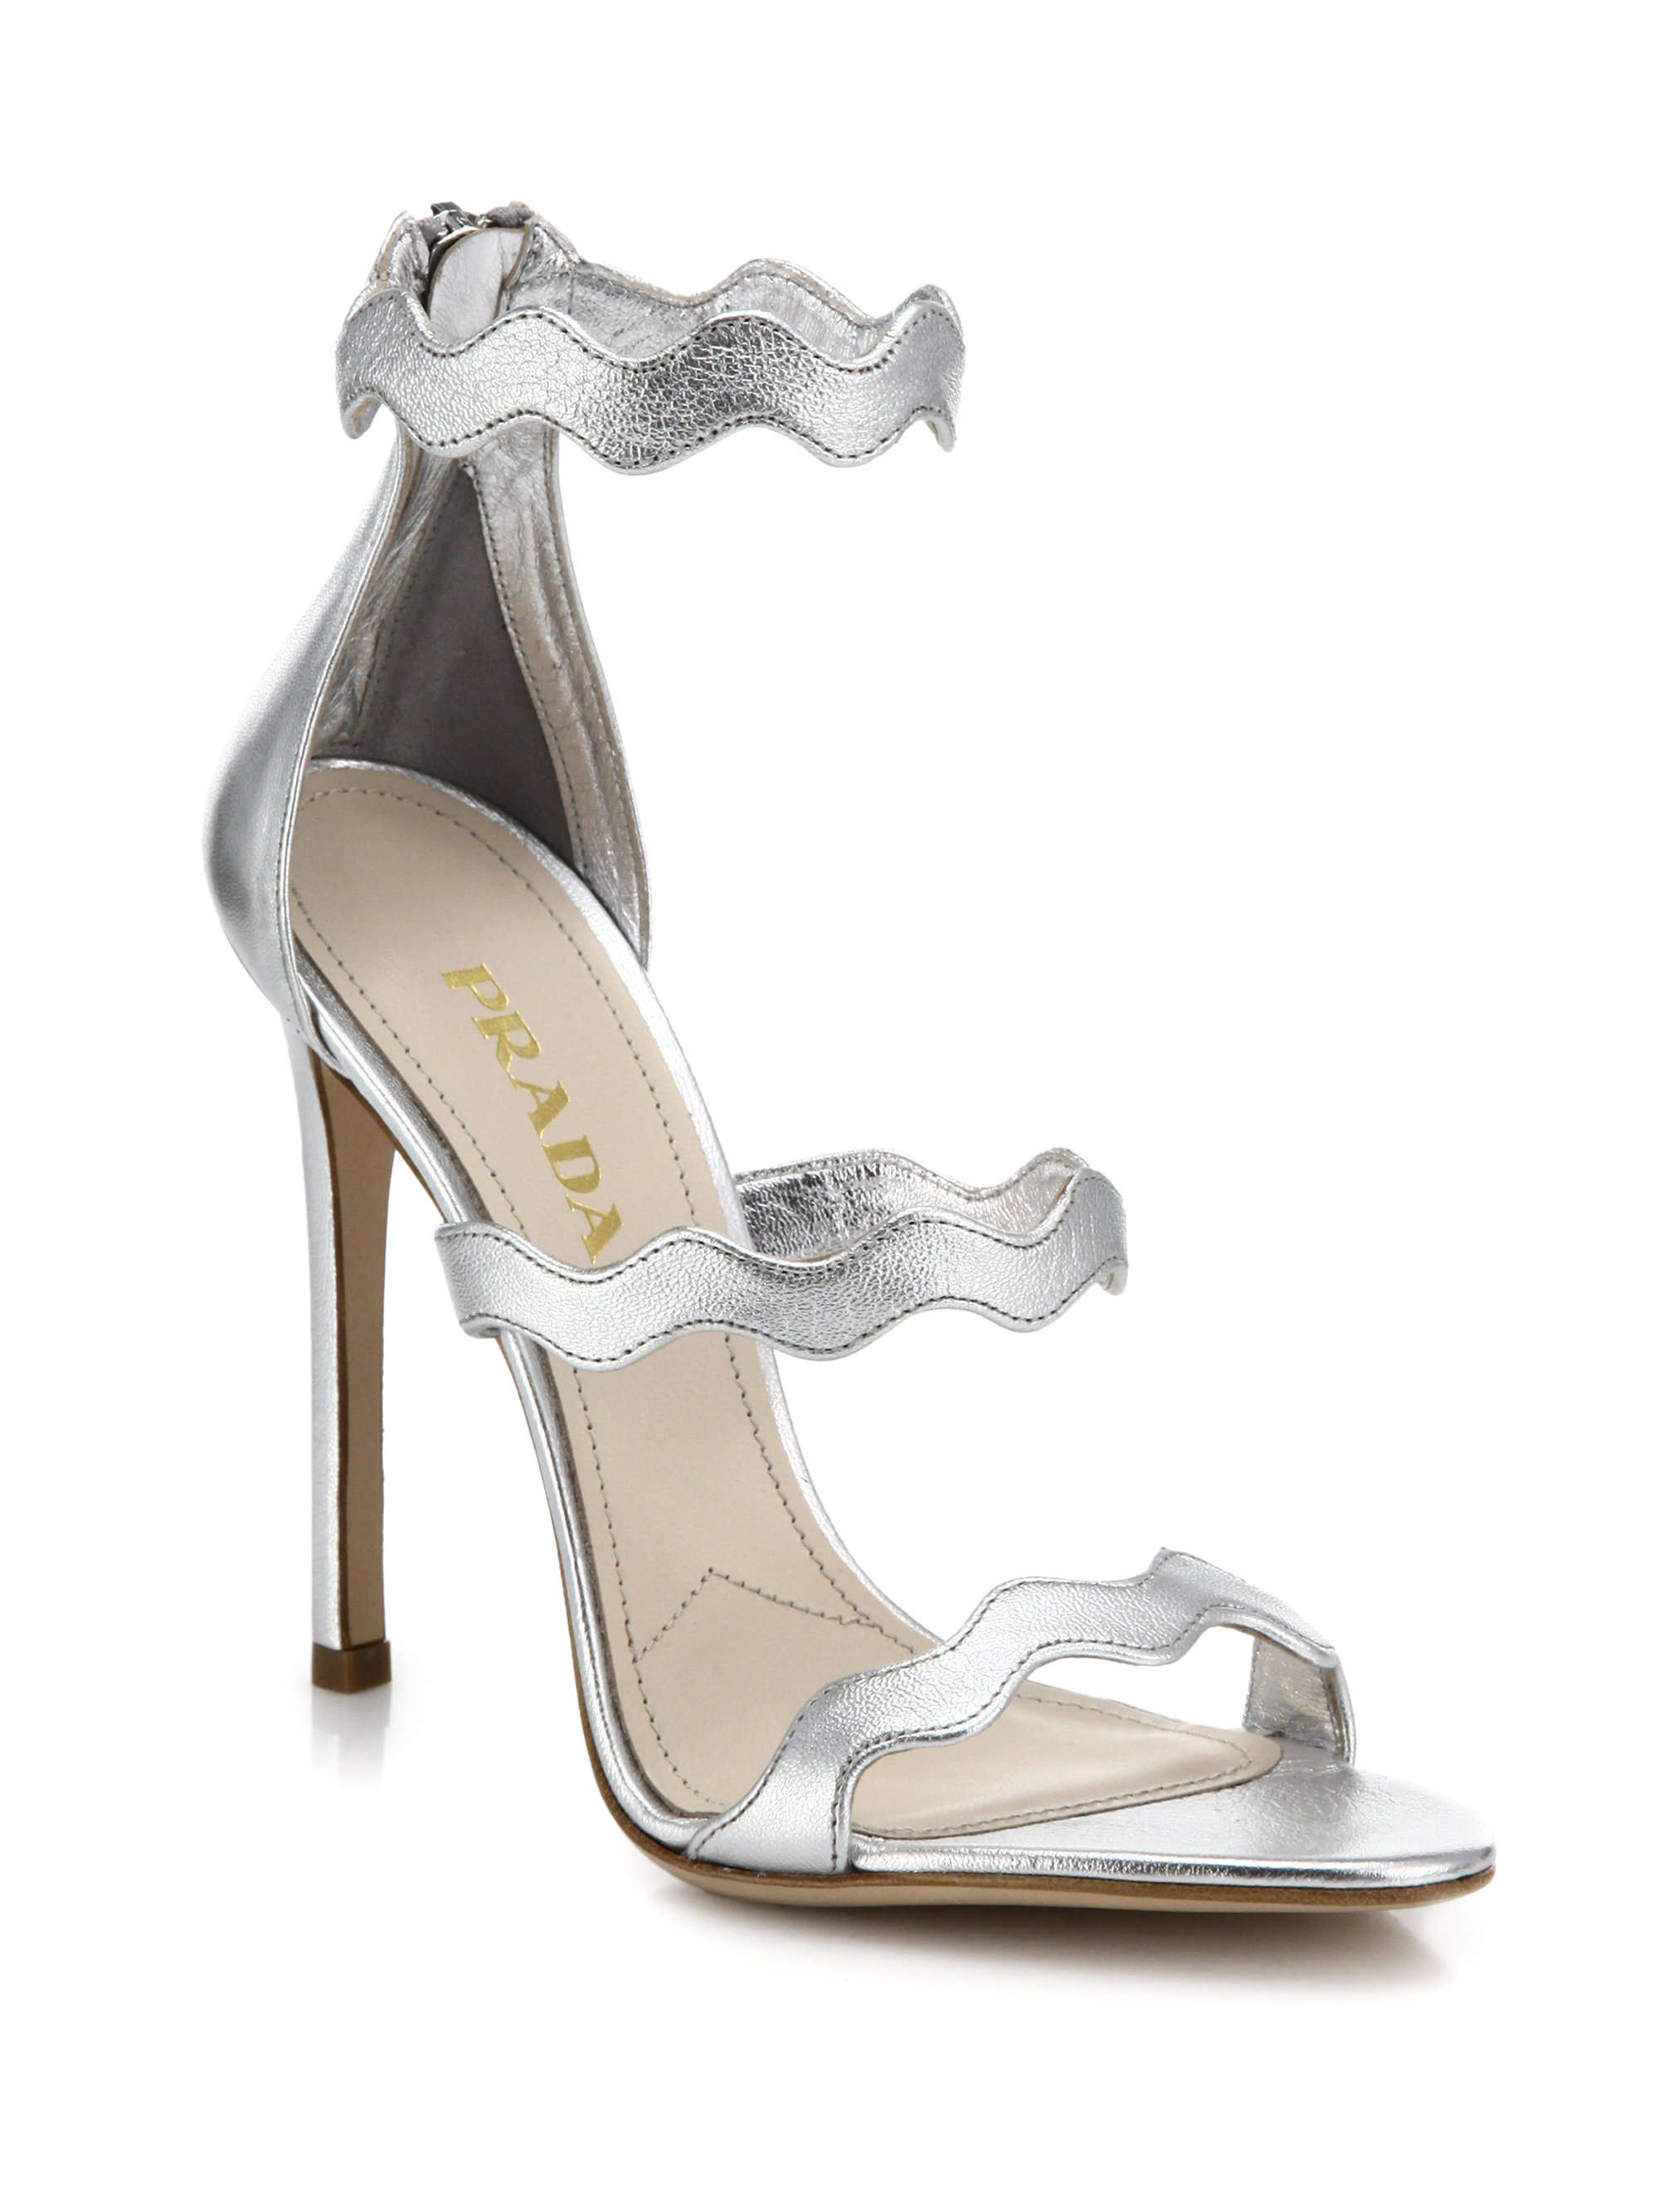 1f46f49201a Lyst - Prada Scalloped Metallic Leather Sandals in Metallic